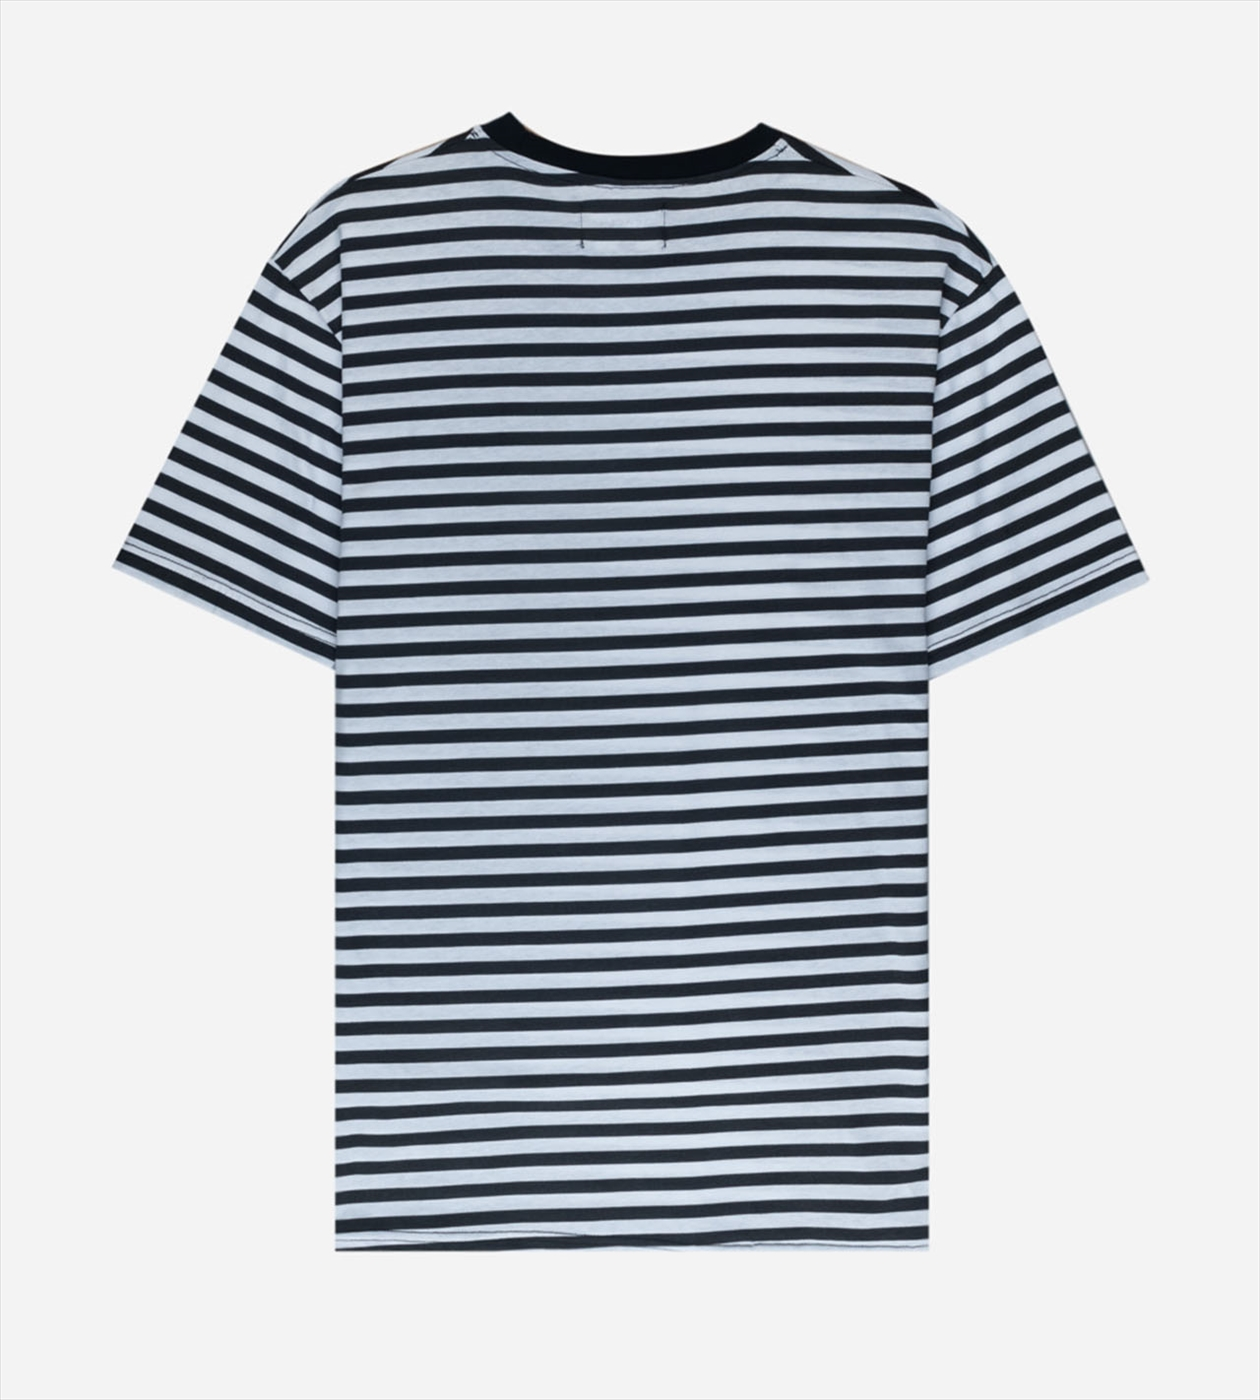 【PAS DE MER/パドゥメ】HOLIDAY T-SHIRT Tシャツ / BLACK/WHITE STRIPES